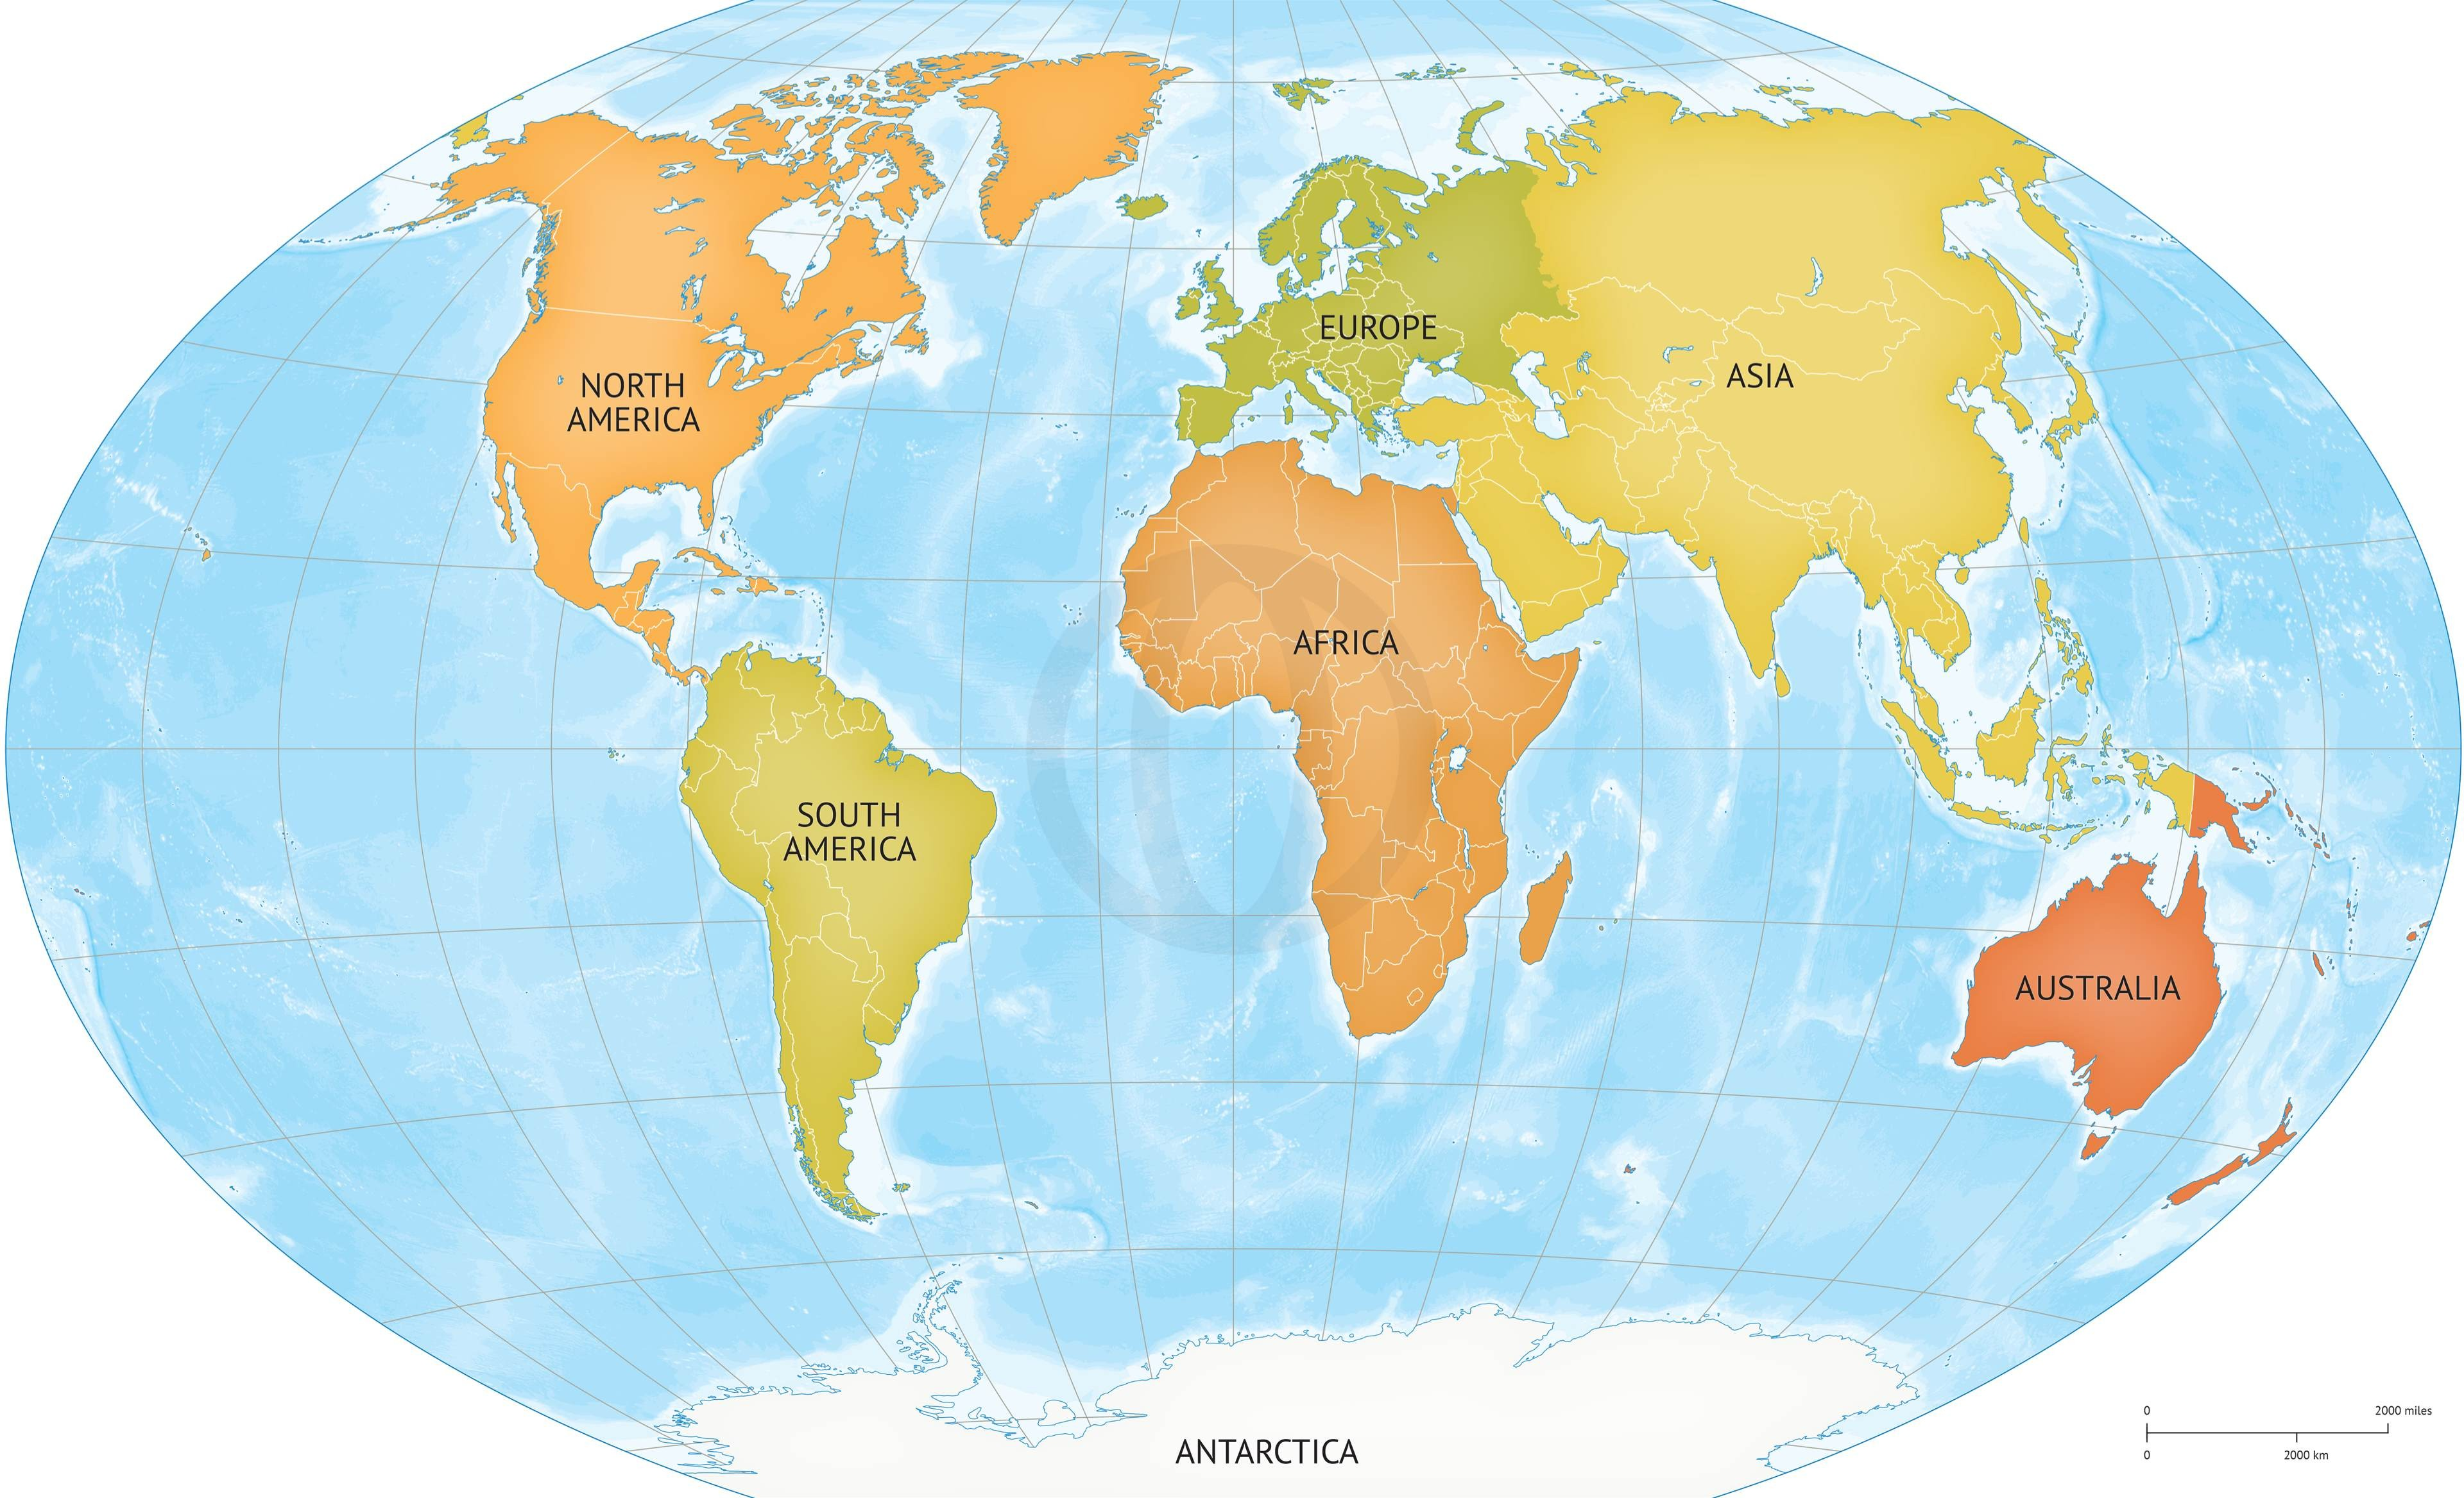 High Resolution World Map With Countries.World Map Outline High Resolution Vector At Getdrawings Com Free